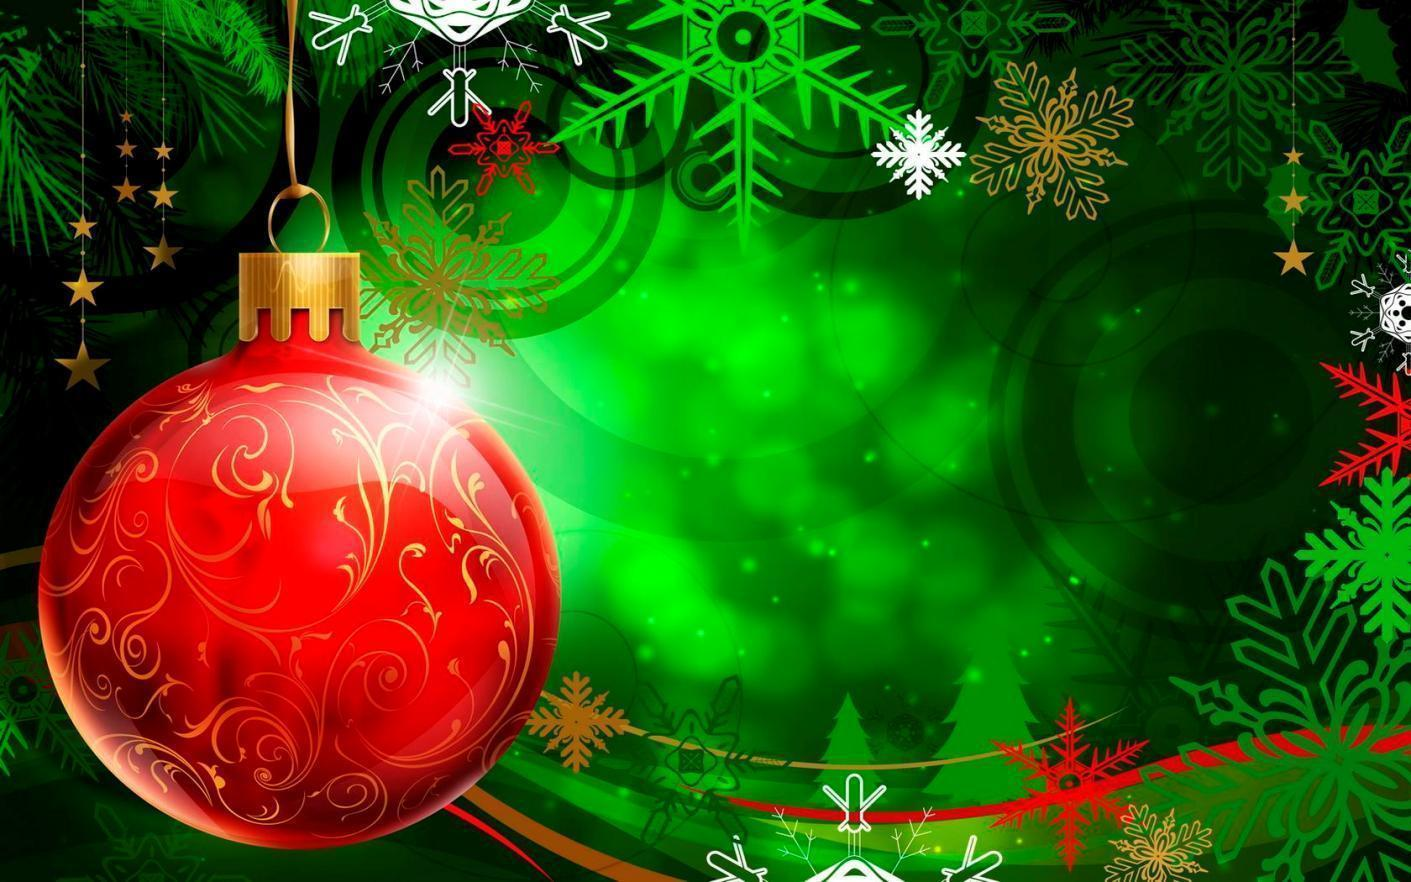 xmas backgrounds image - wallpaper cave